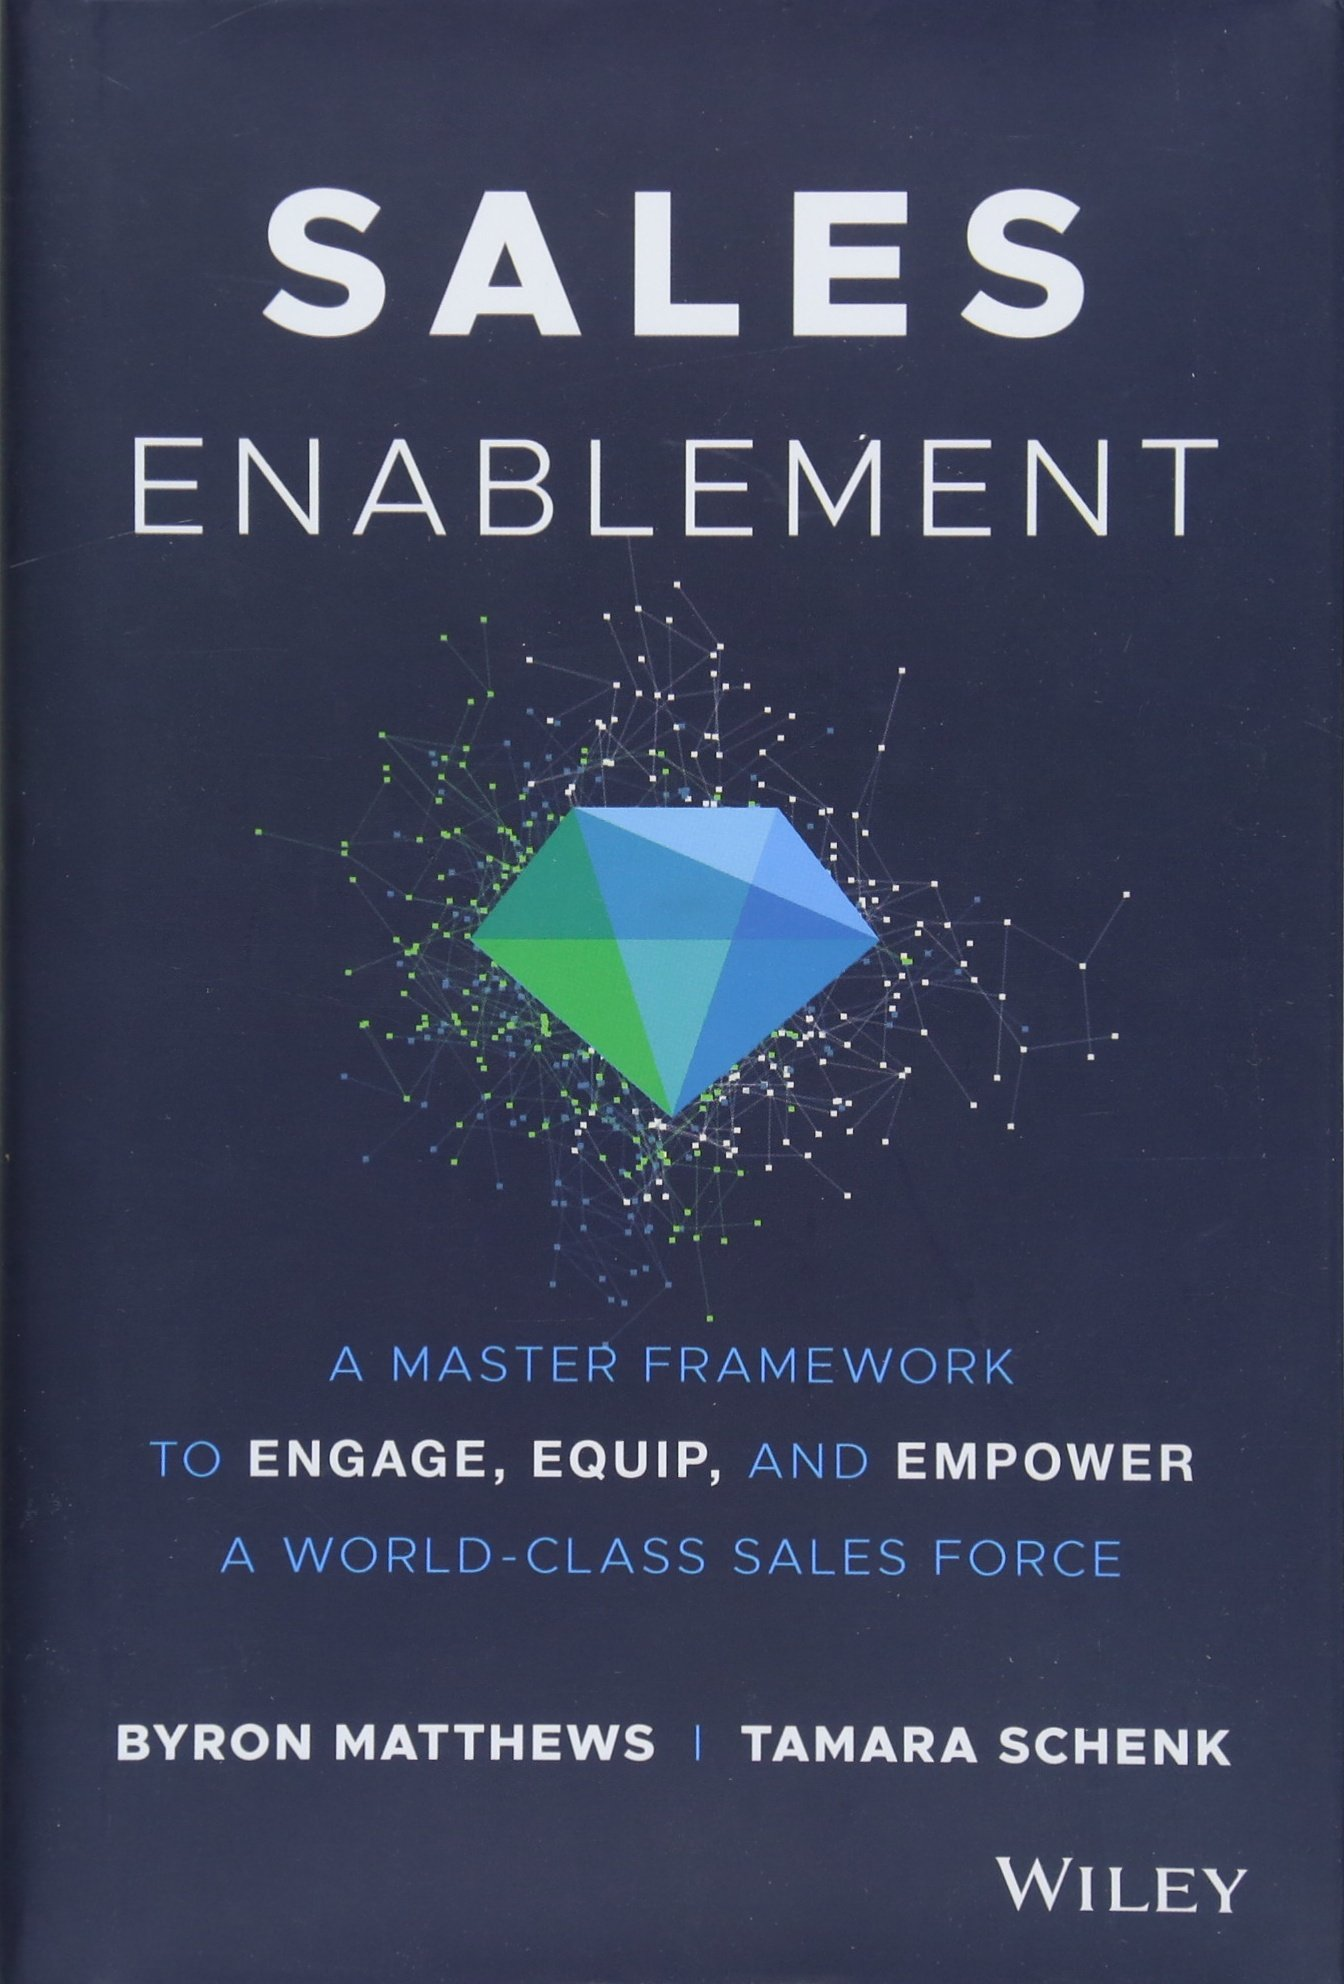 Download Sales Enablement: A Master Framework to Engage, Equip, and Empower A World-Class Sales Force ebook